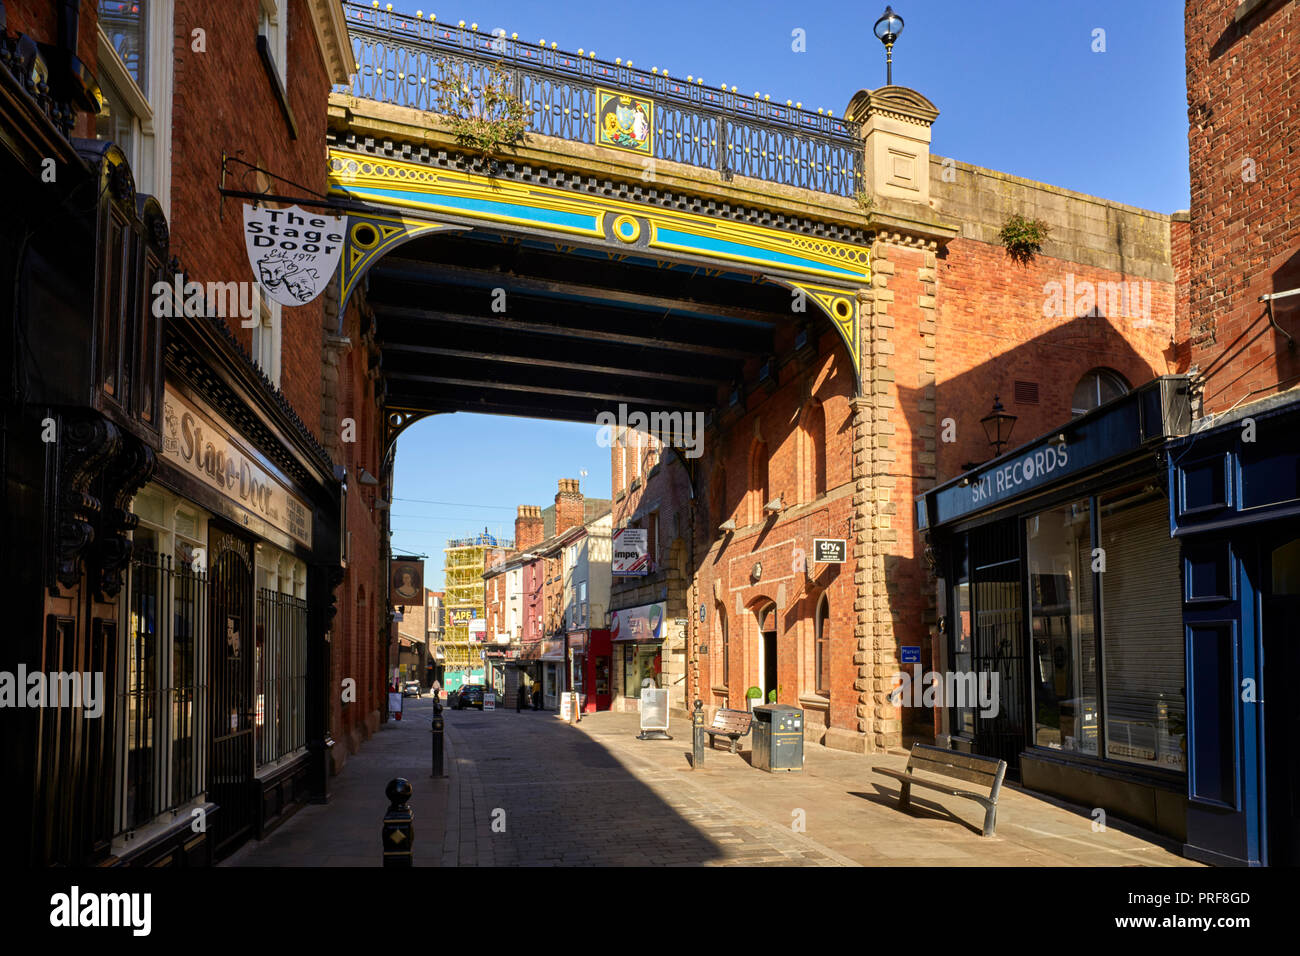 The Underbank and bridge over in Stockport near Manchester - Stock Image